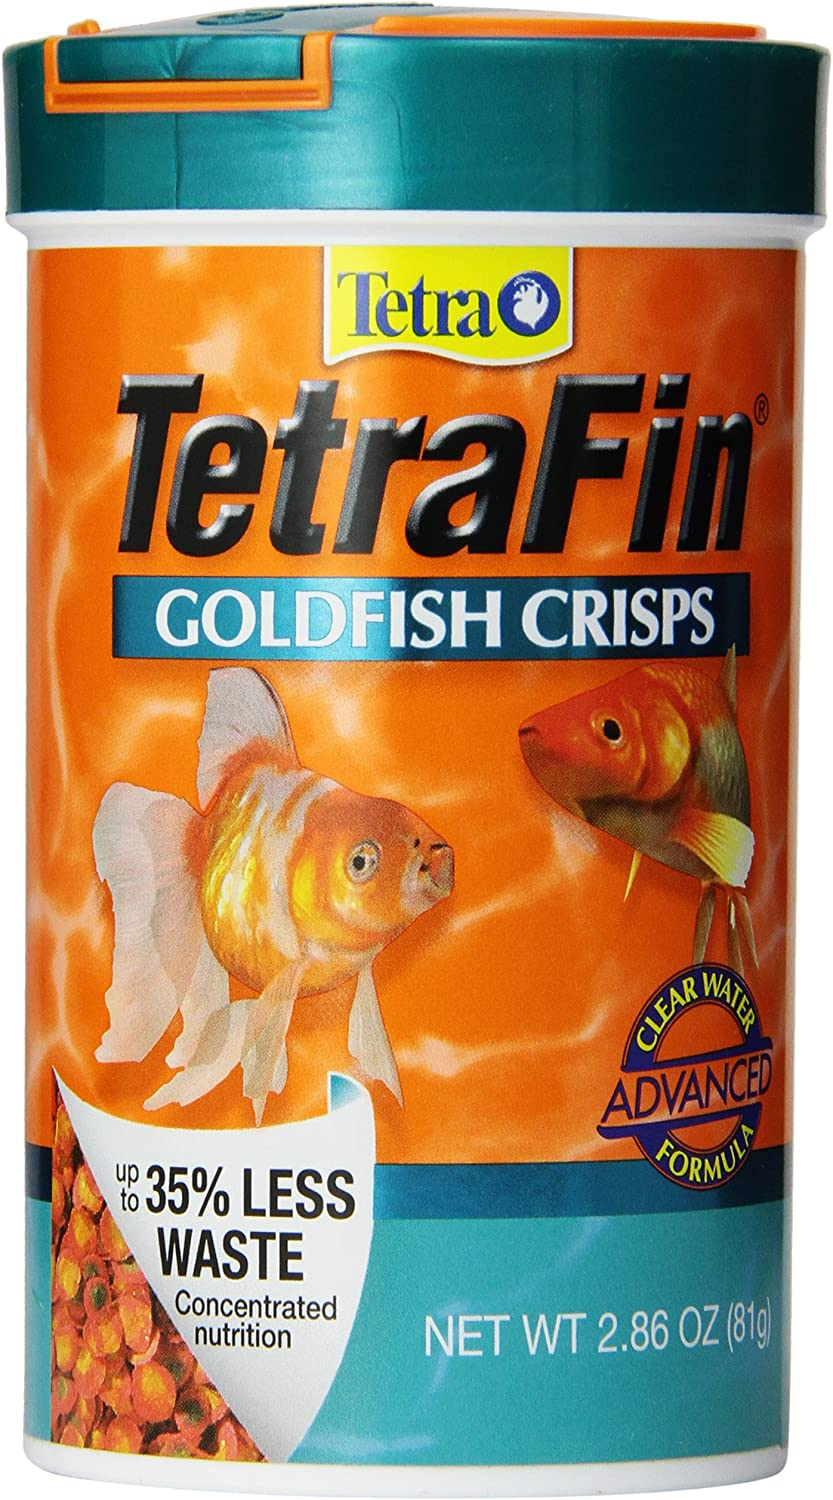 TetraFin Goldfish Crisps, Clear Water Advanced Formula